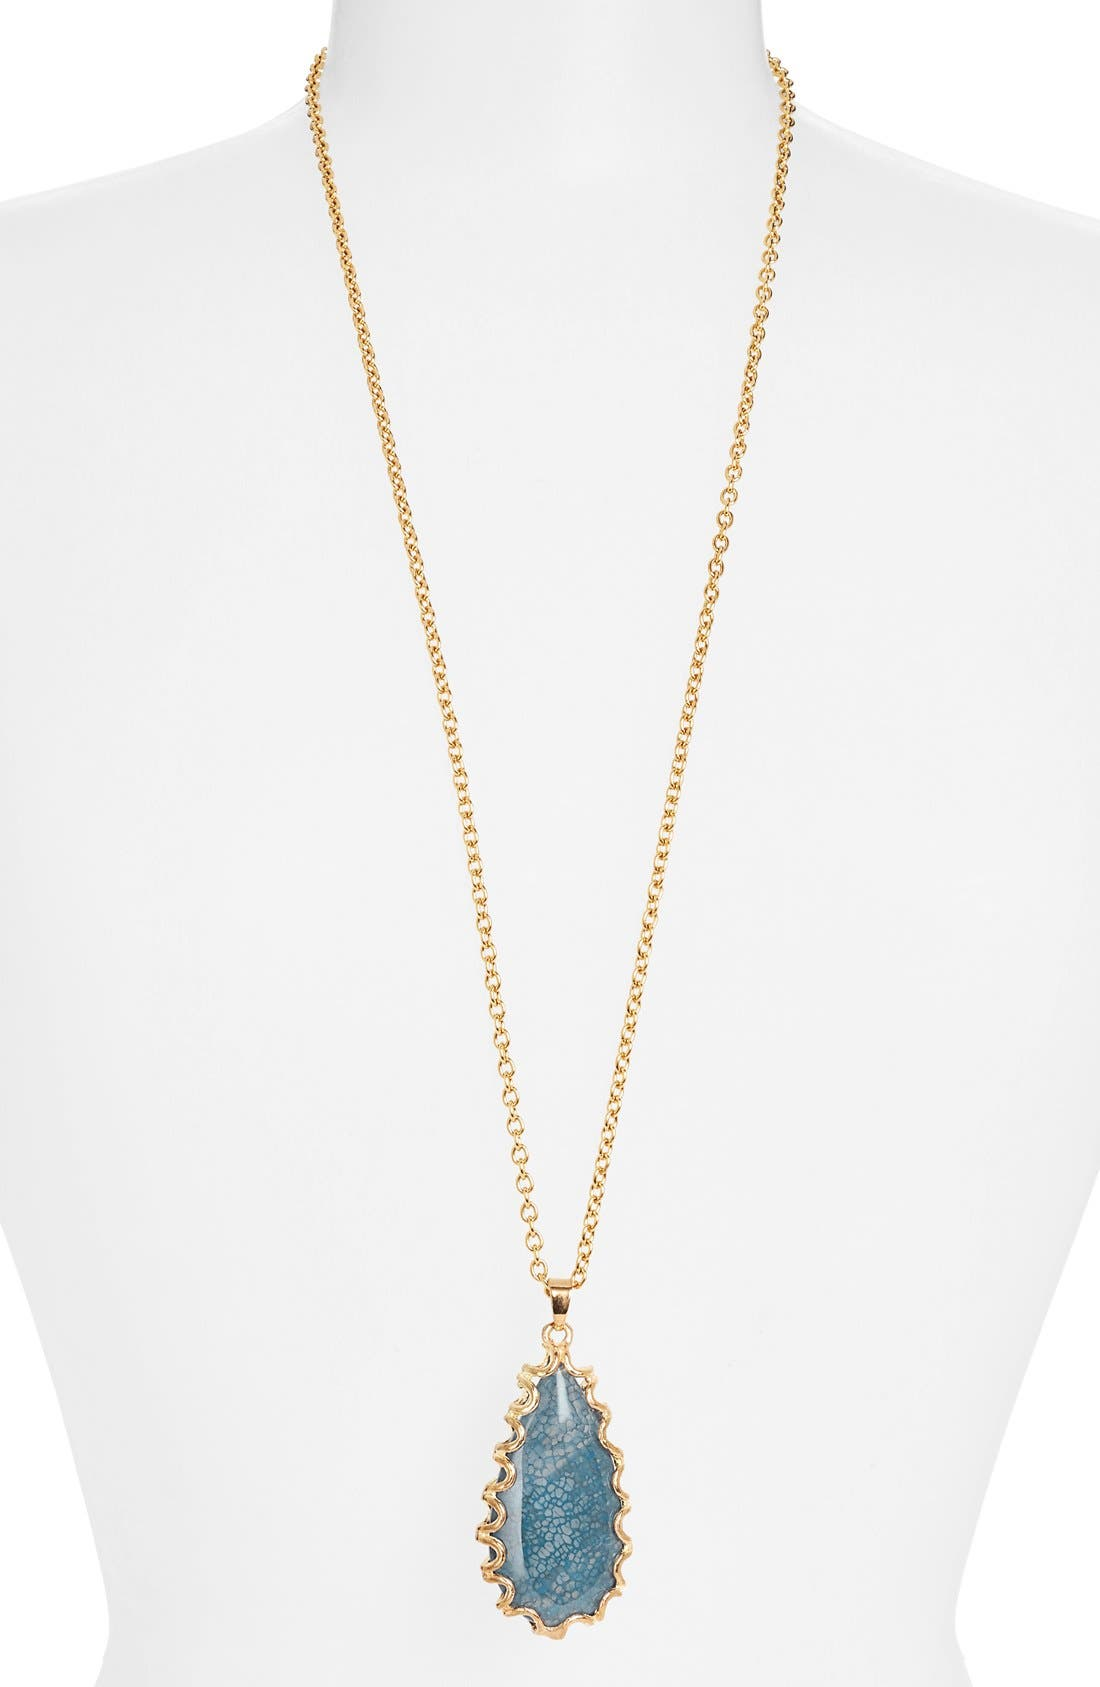 Alternate Image 1 Selected - Nordstrom 'Sorcerer's Stone' Long Teardrop Pendant Necklace